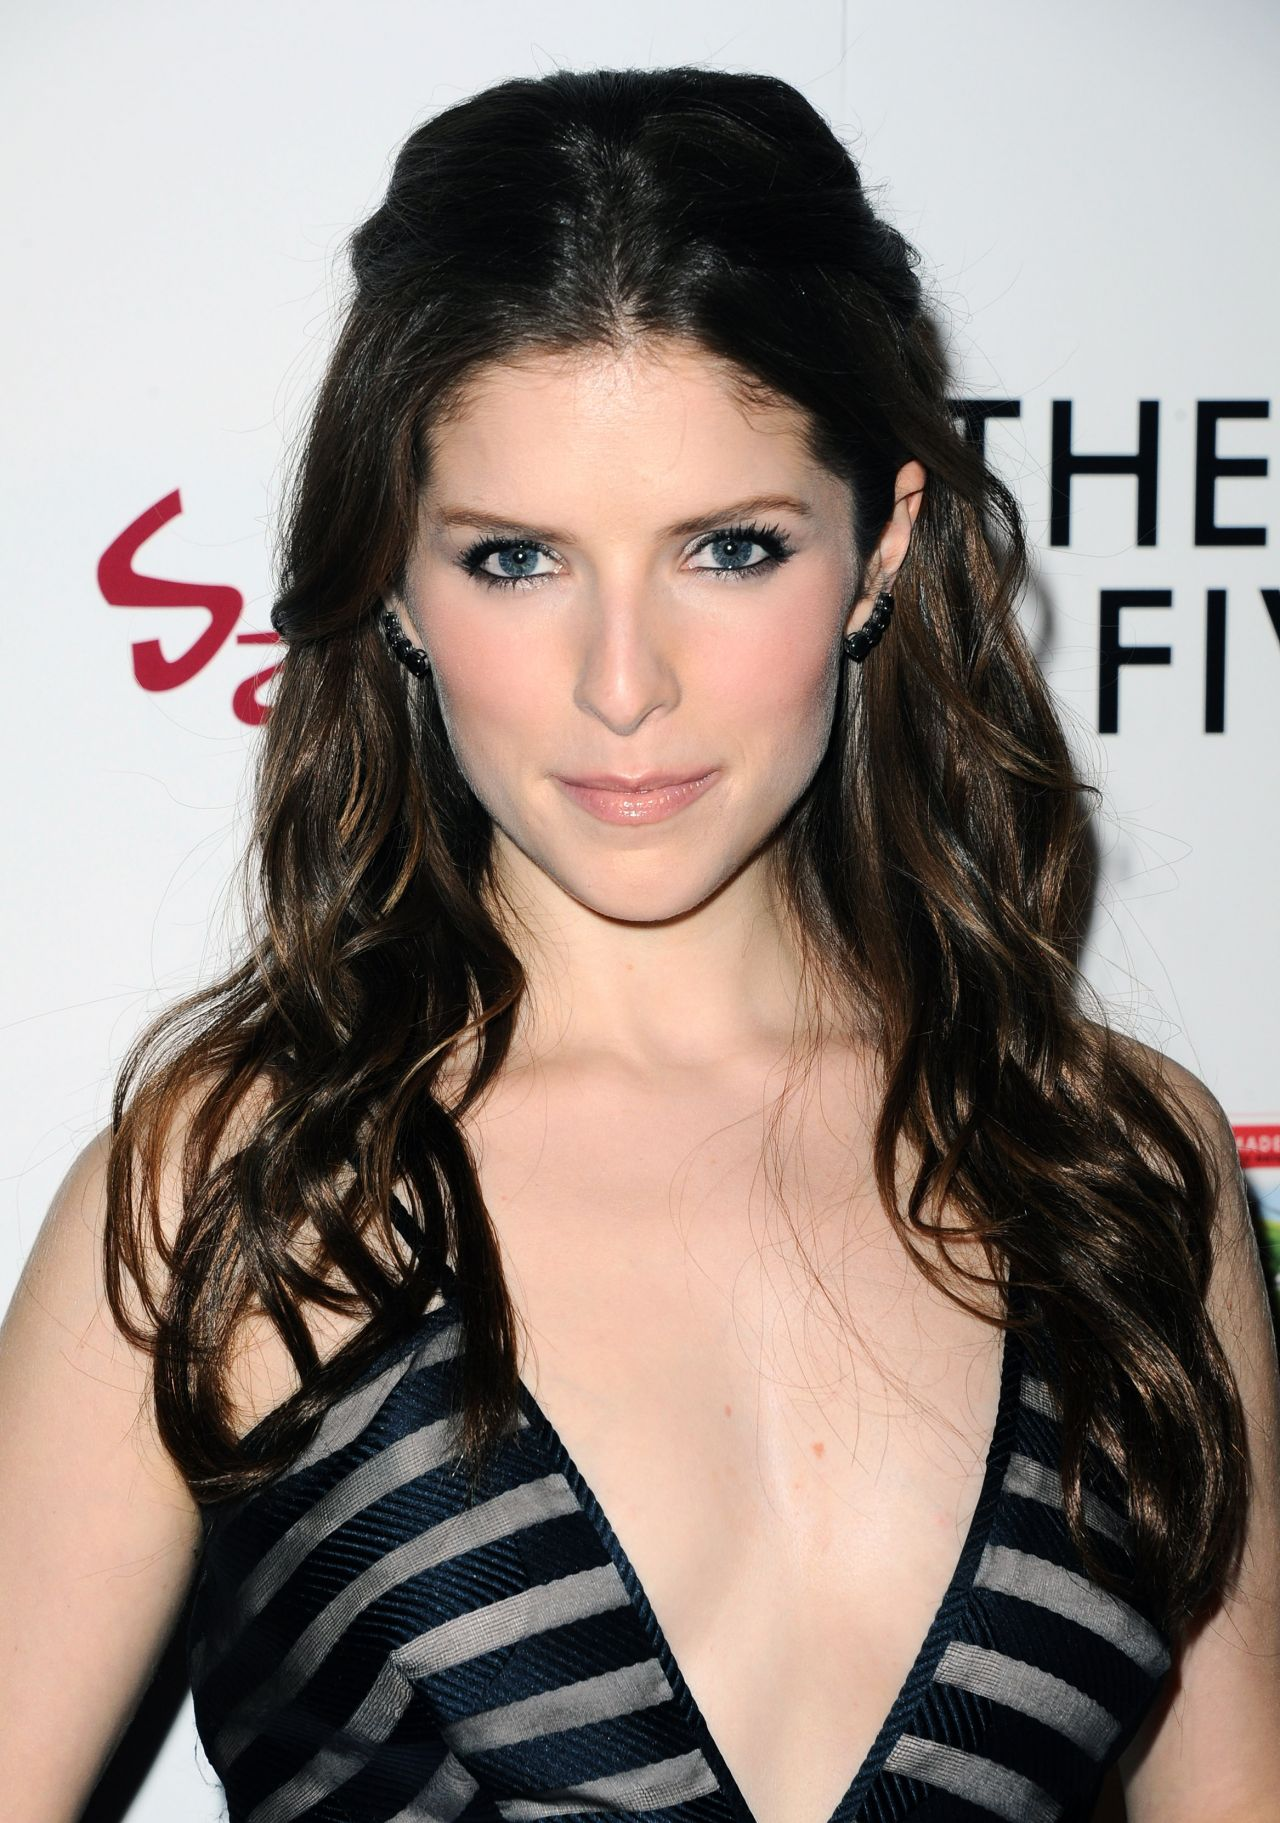 anna-kendrick-the-last-five-years-premiere-in-hollywood_1